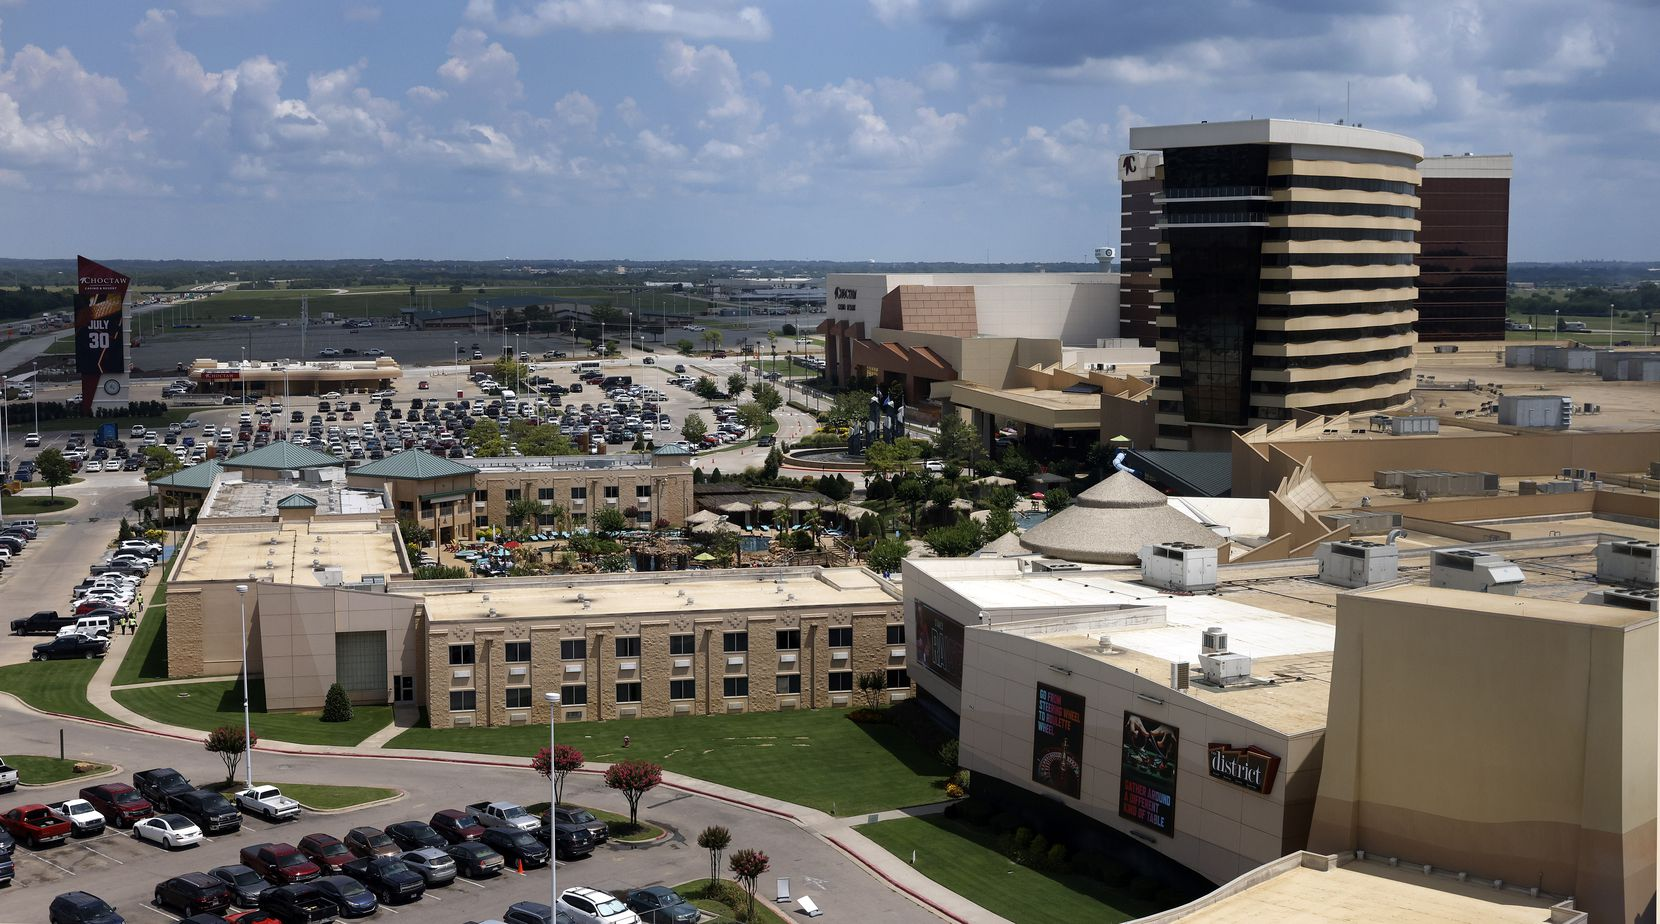 The Choctaw Casino and Resort is pictured from the new 21-story Sky Tower complex.